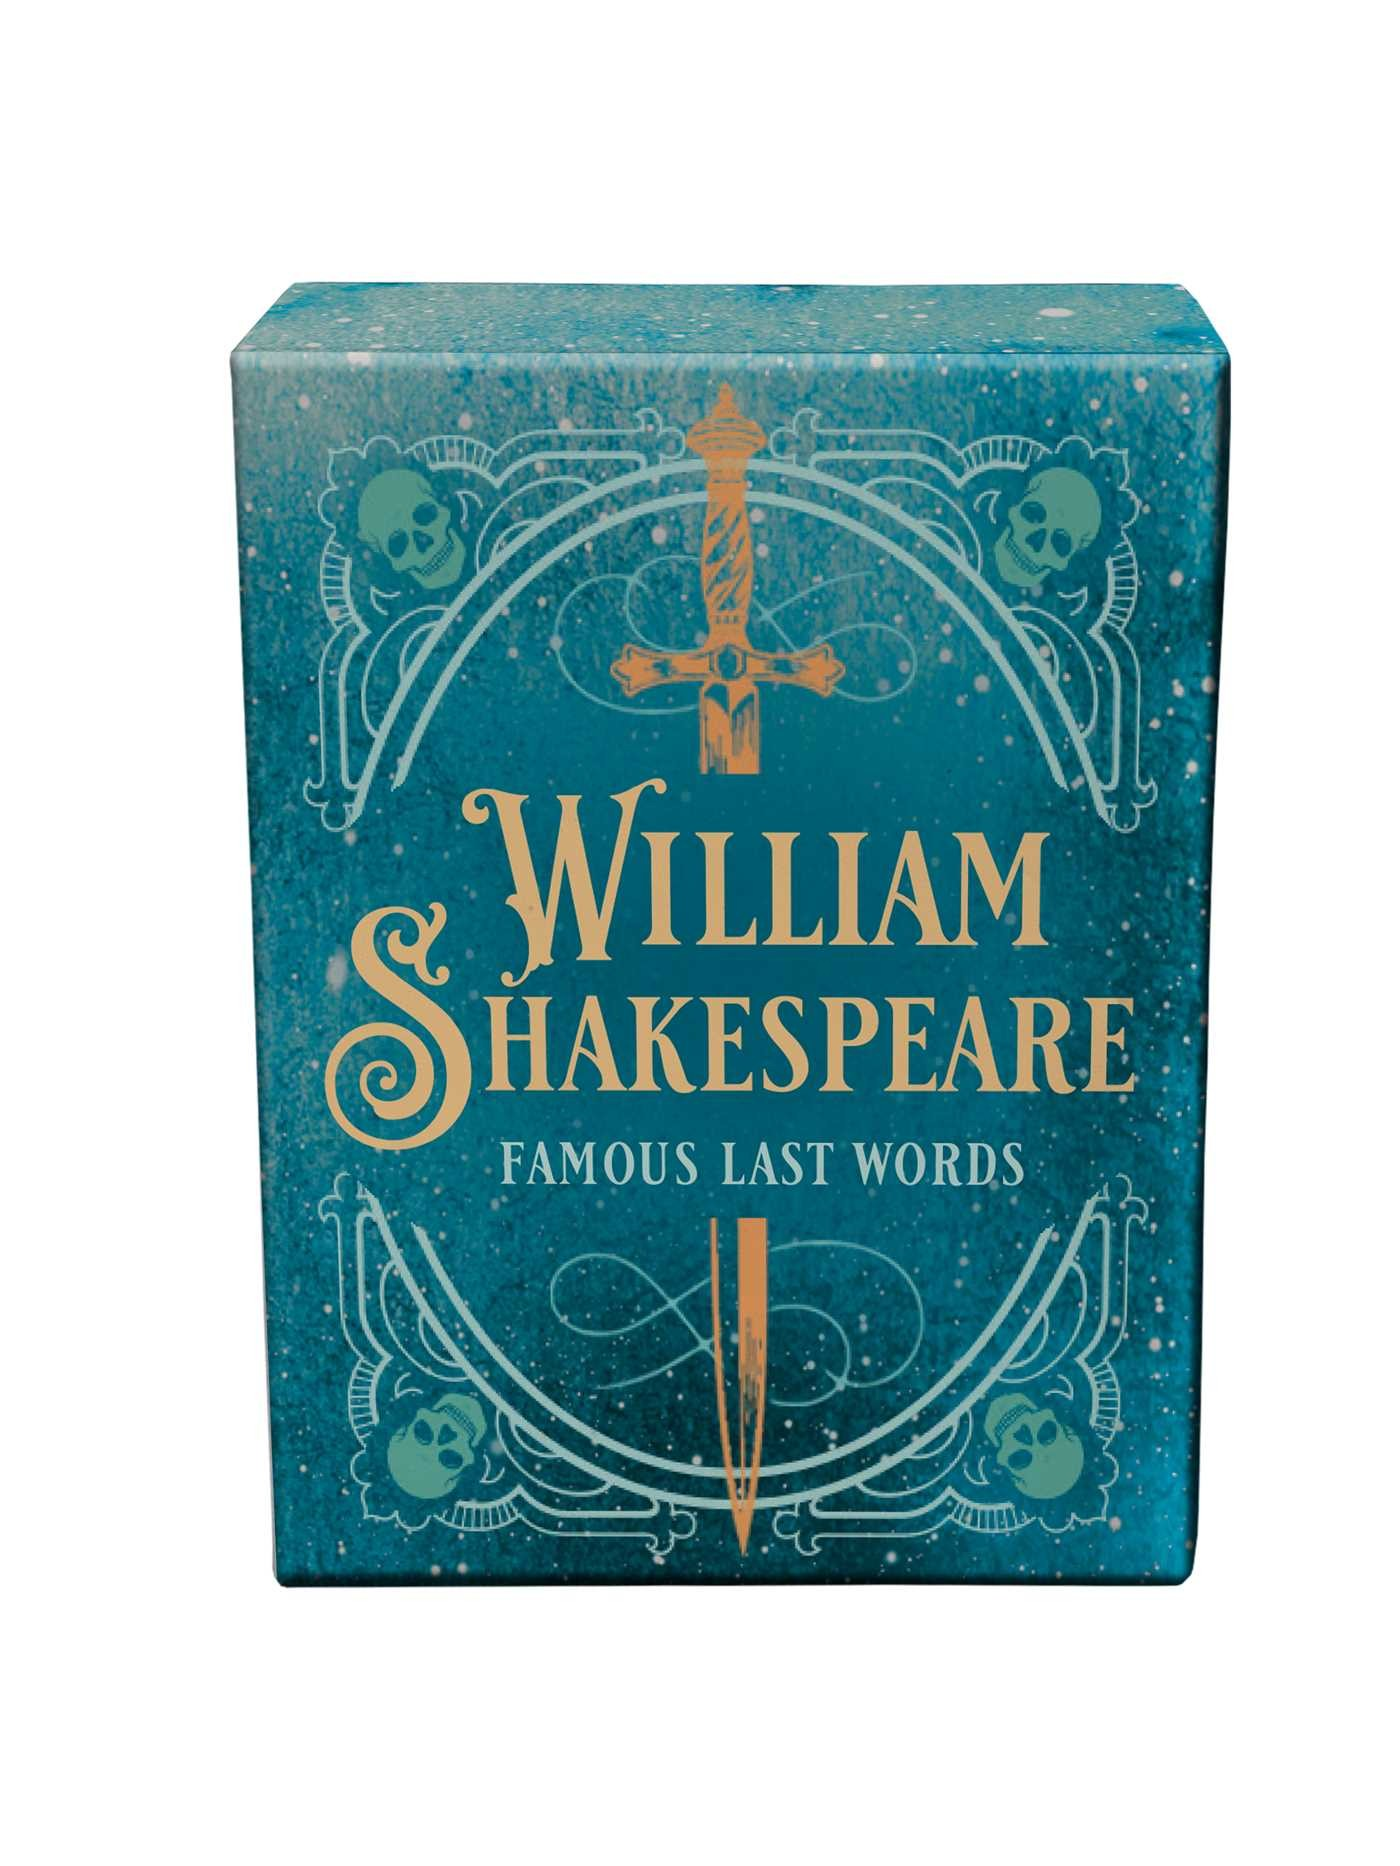 William shakespeare famous last words 9781683835875.in01